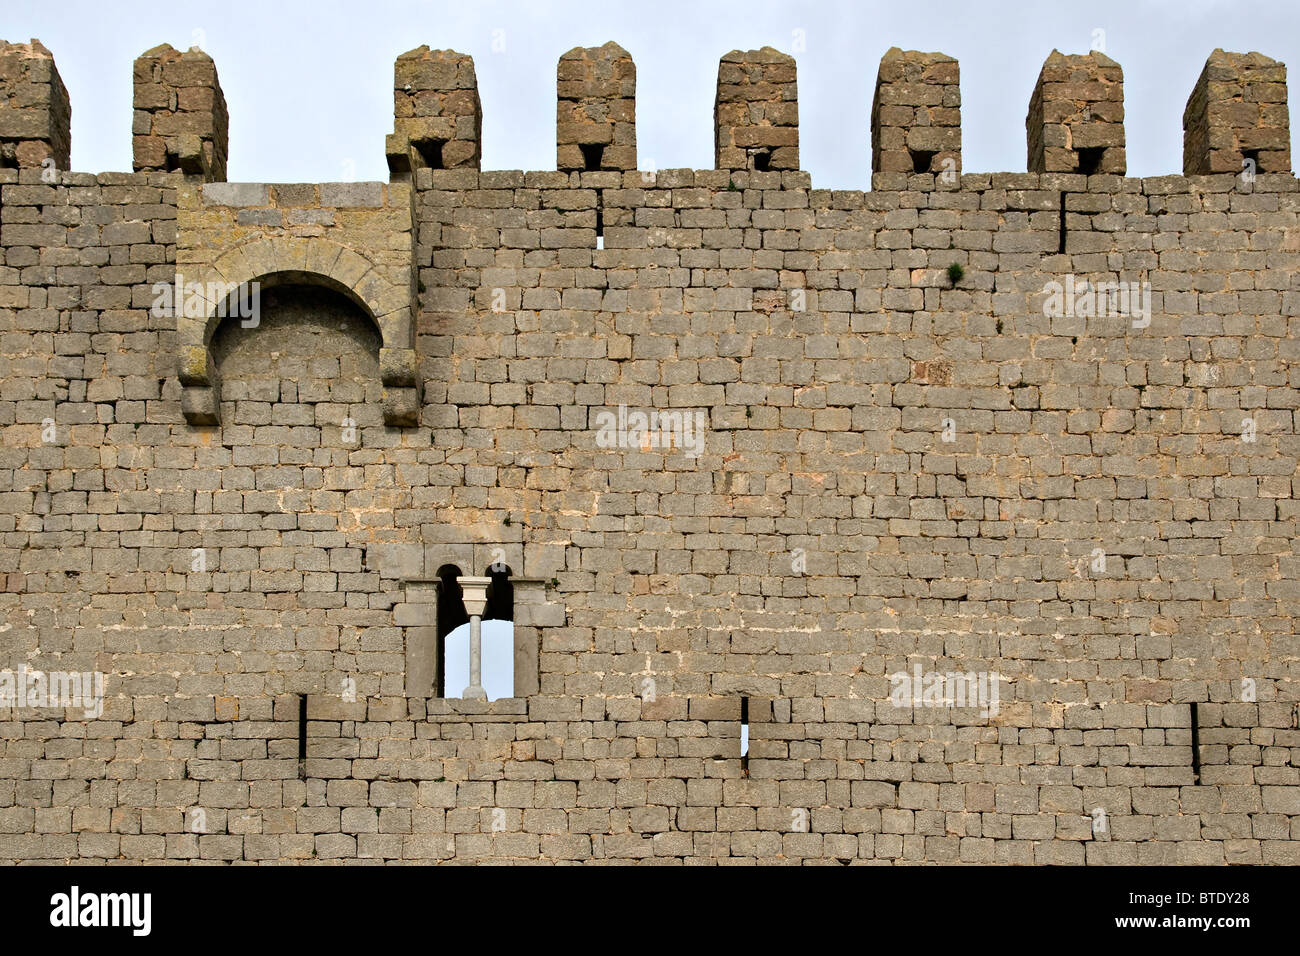 Curtain Wall Medieval Times : Curtain wall castle weakness menzilperde